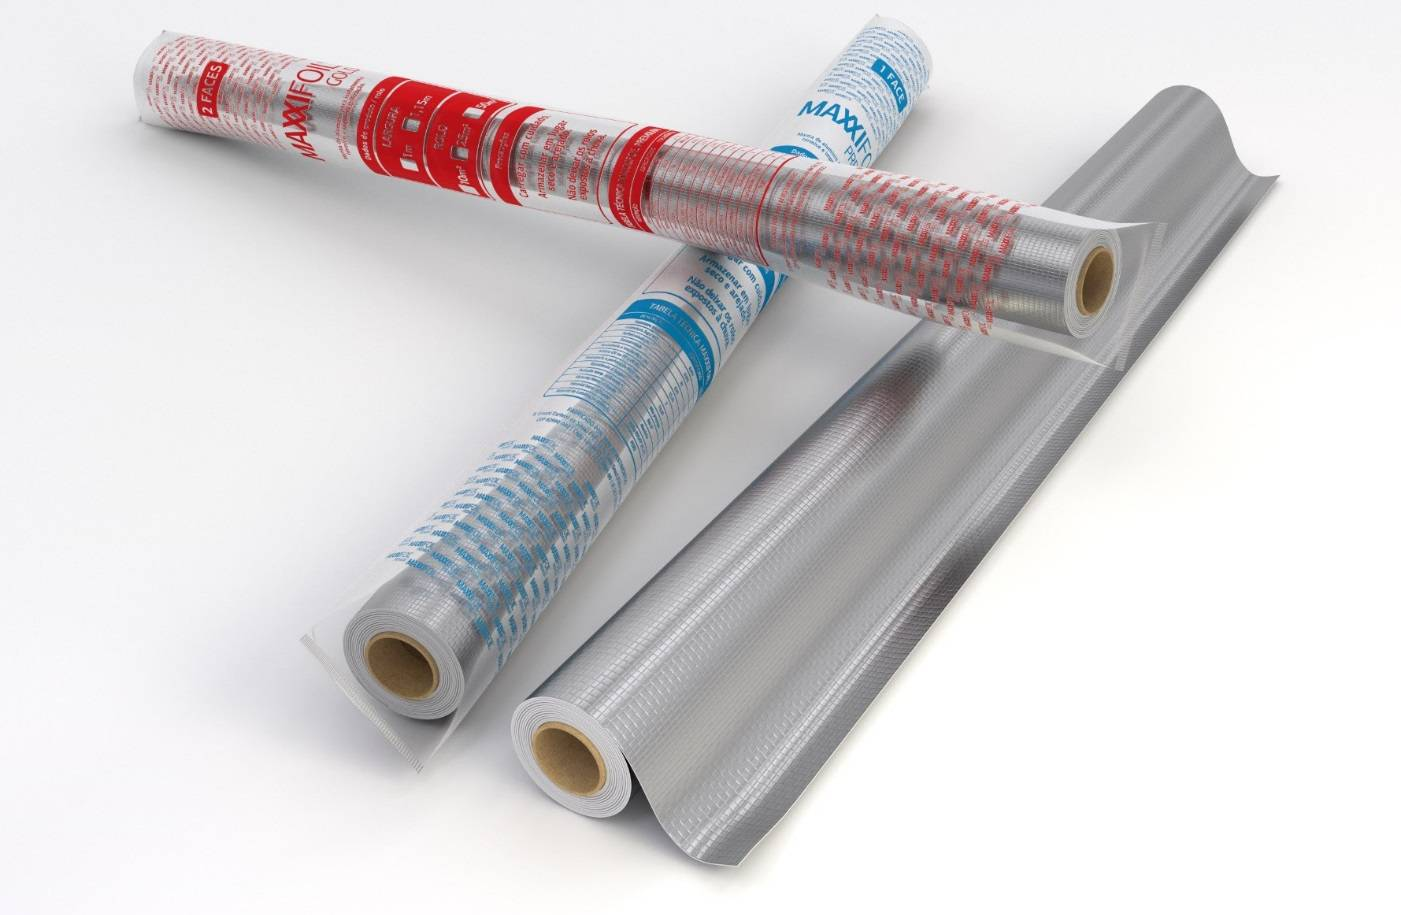 MAXXIFOIL - THERMAL INSULATION FOIL / RADIANT BARRIER / REFLECTIVE INSULATION